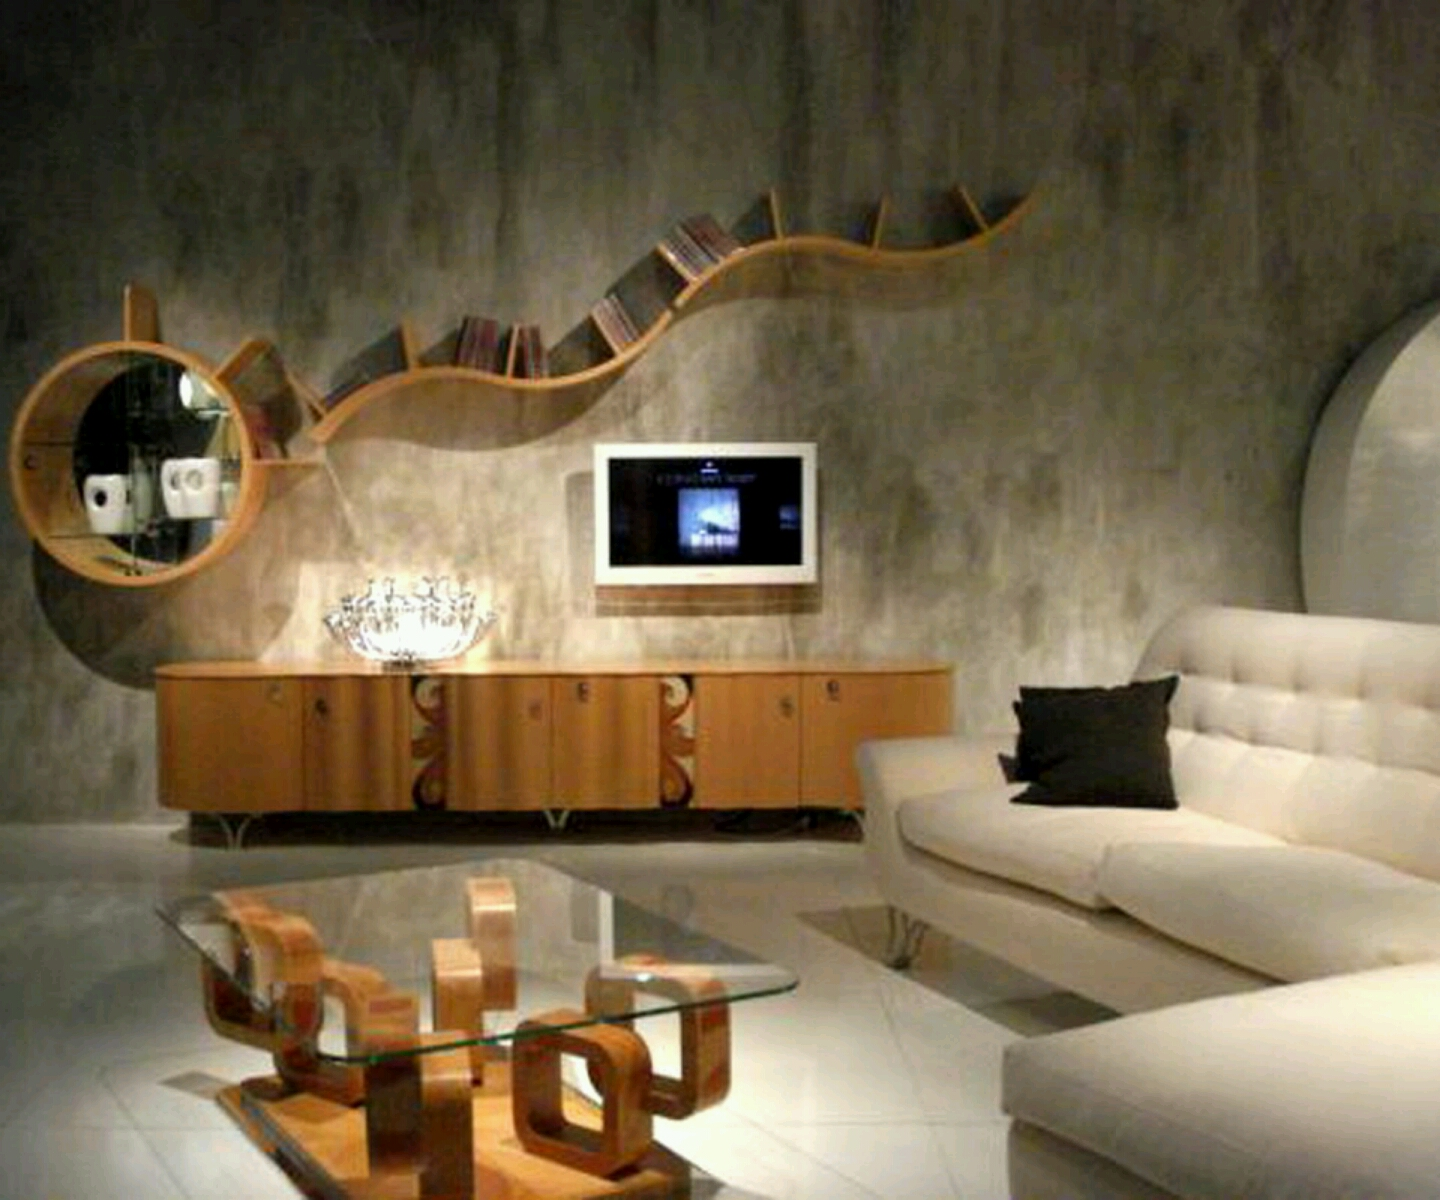 Remarkable Living Room Design 1440 x 1200 · 1023 kB · jpeg